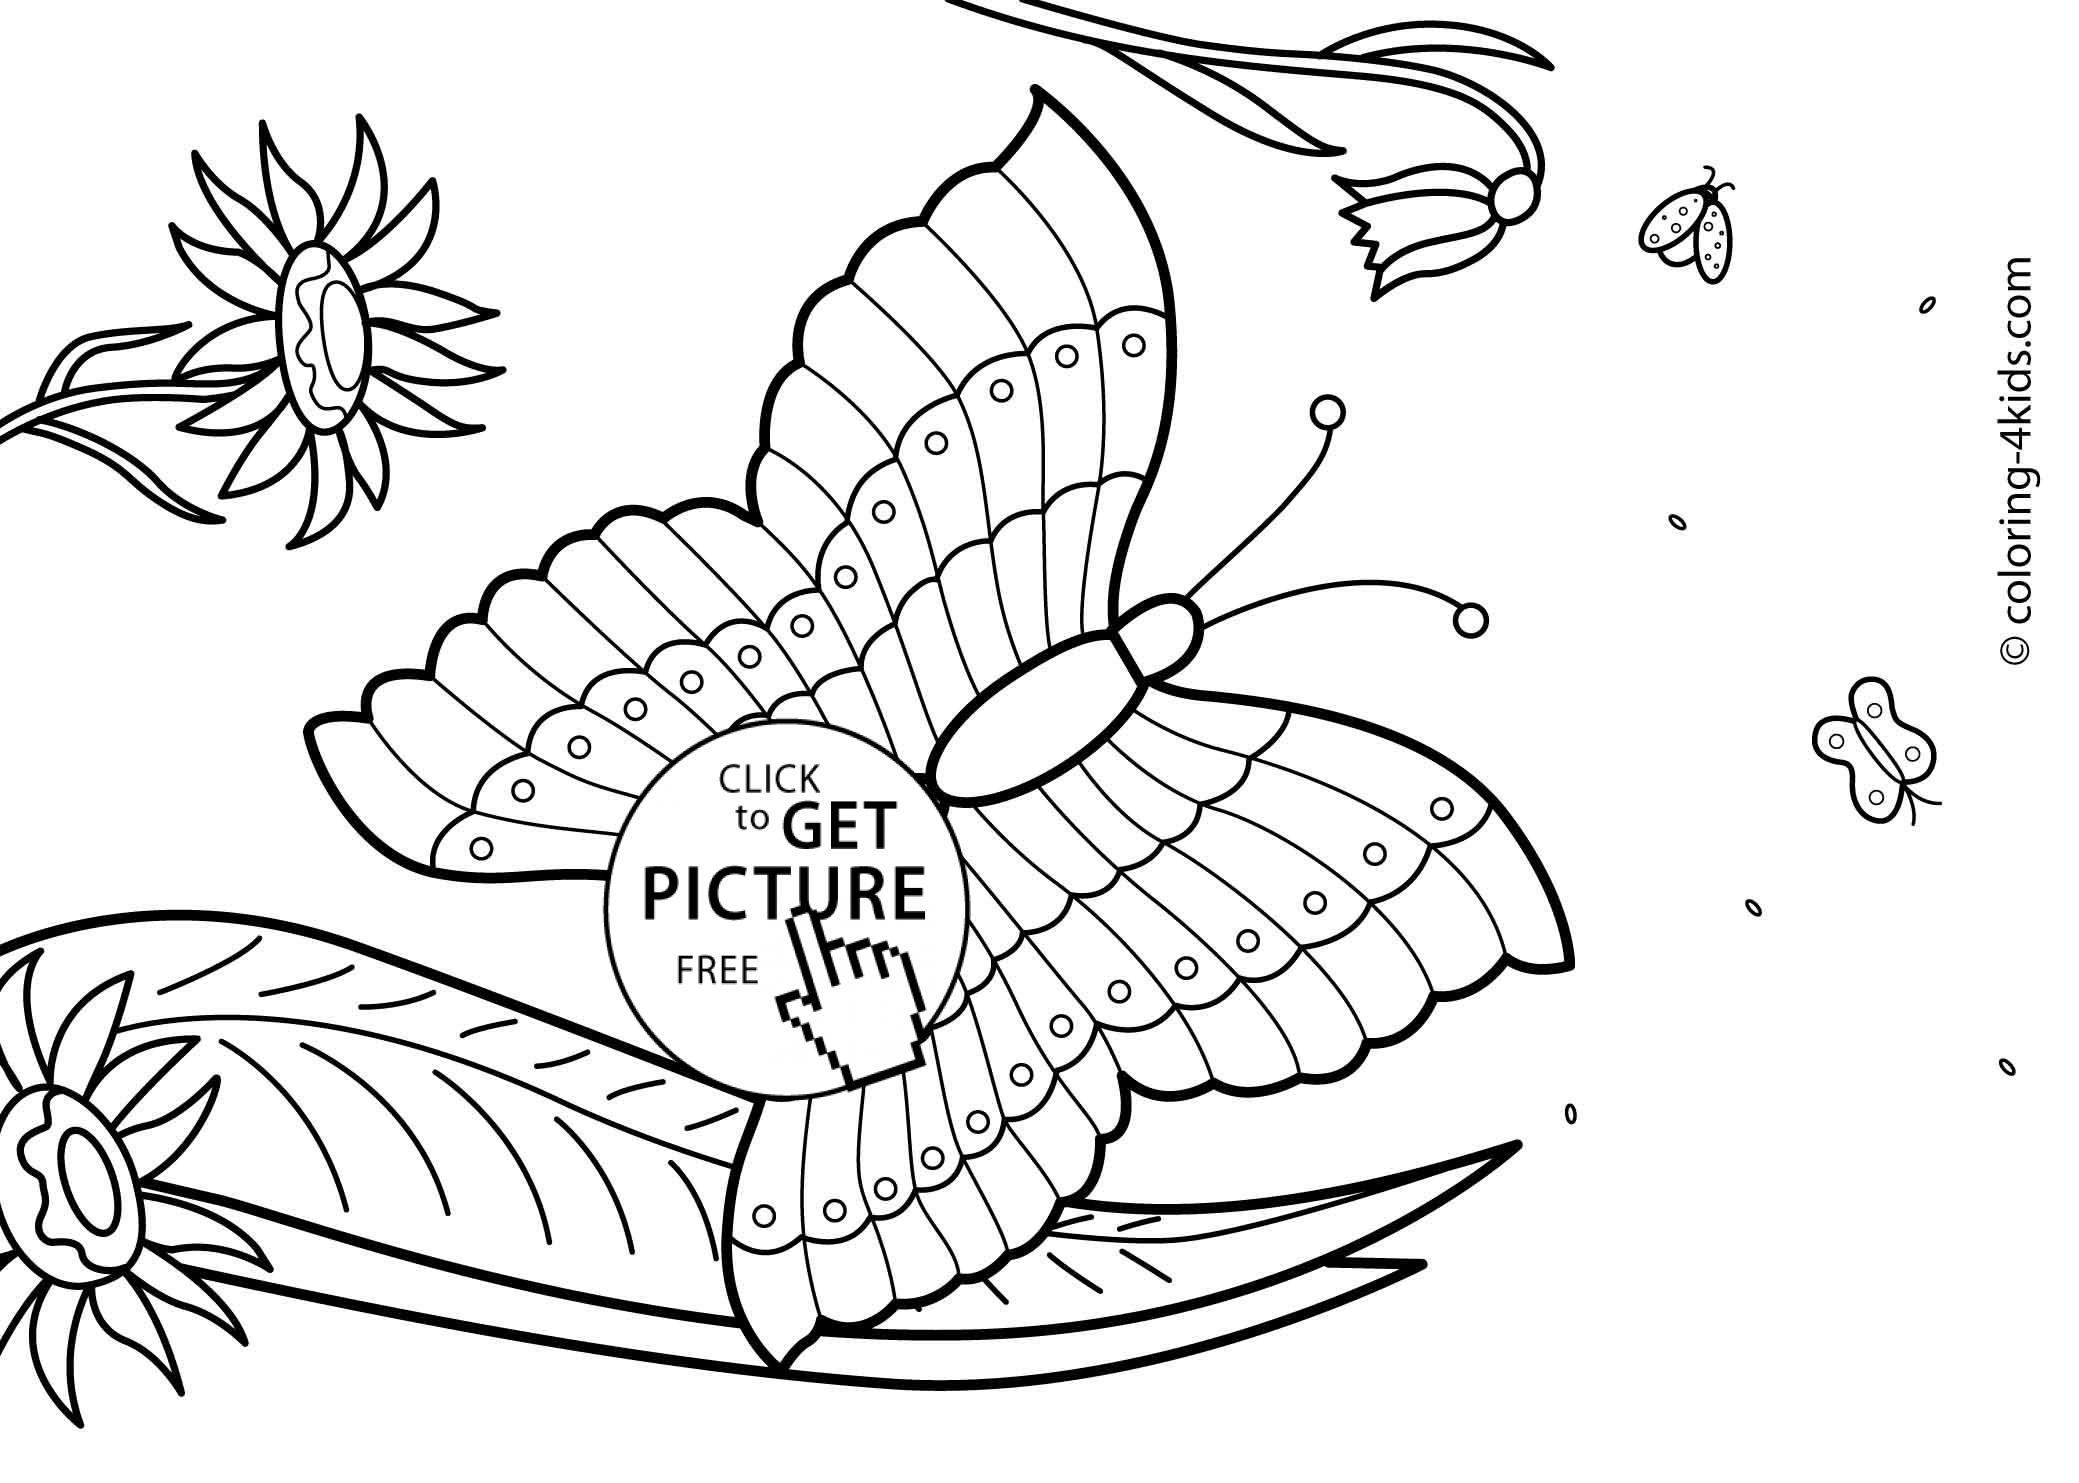 Coloring Pages : Free Summer Coloring Printables Printable Beach - Summer Coloring Sheets Free Printable